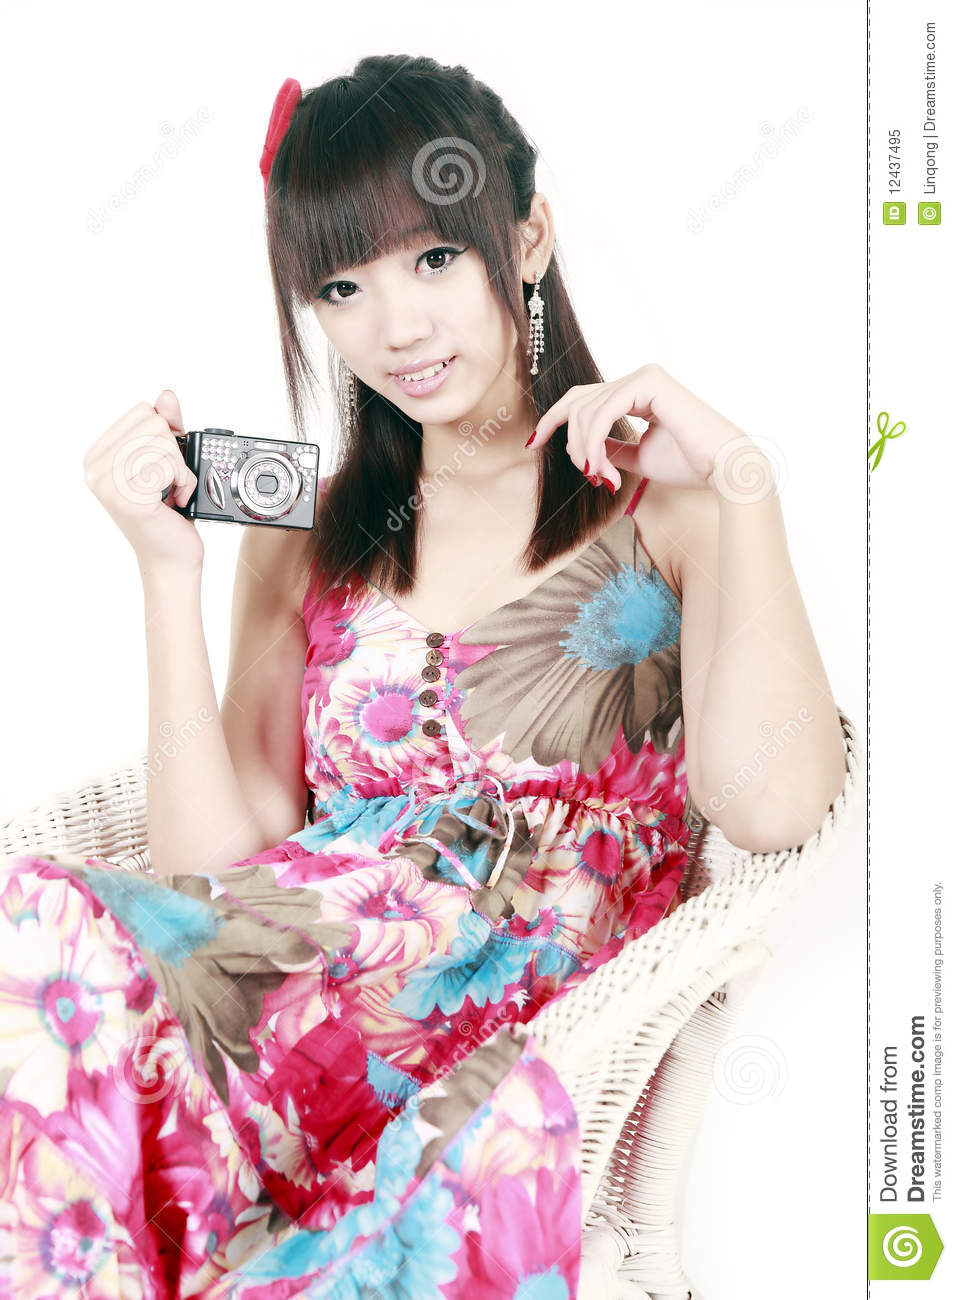 preteen girl with digital camera royalty free stock image  average rent for one bedroom apartment in washington dc